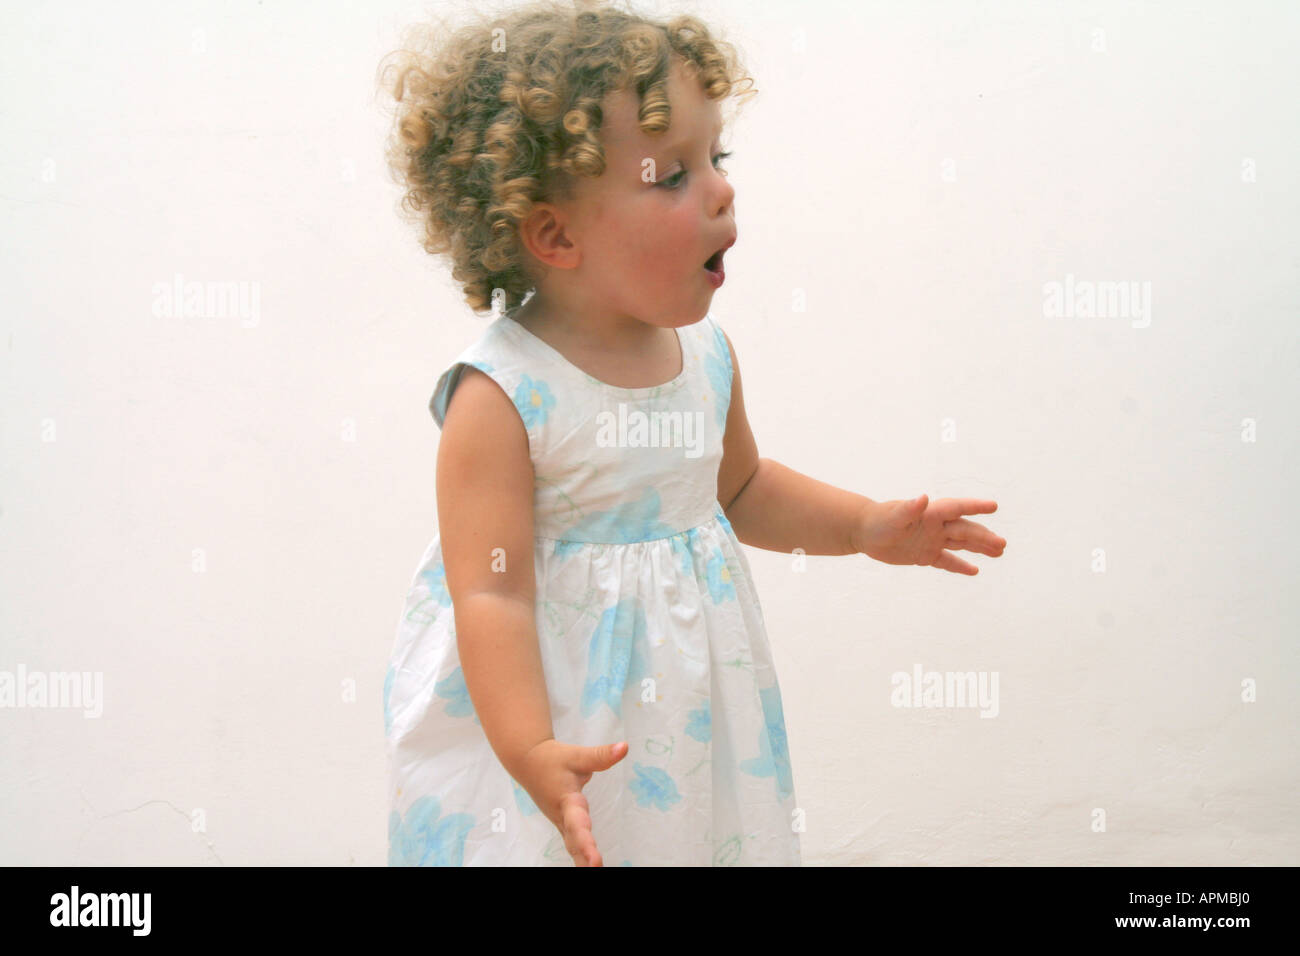 child - Stock Image